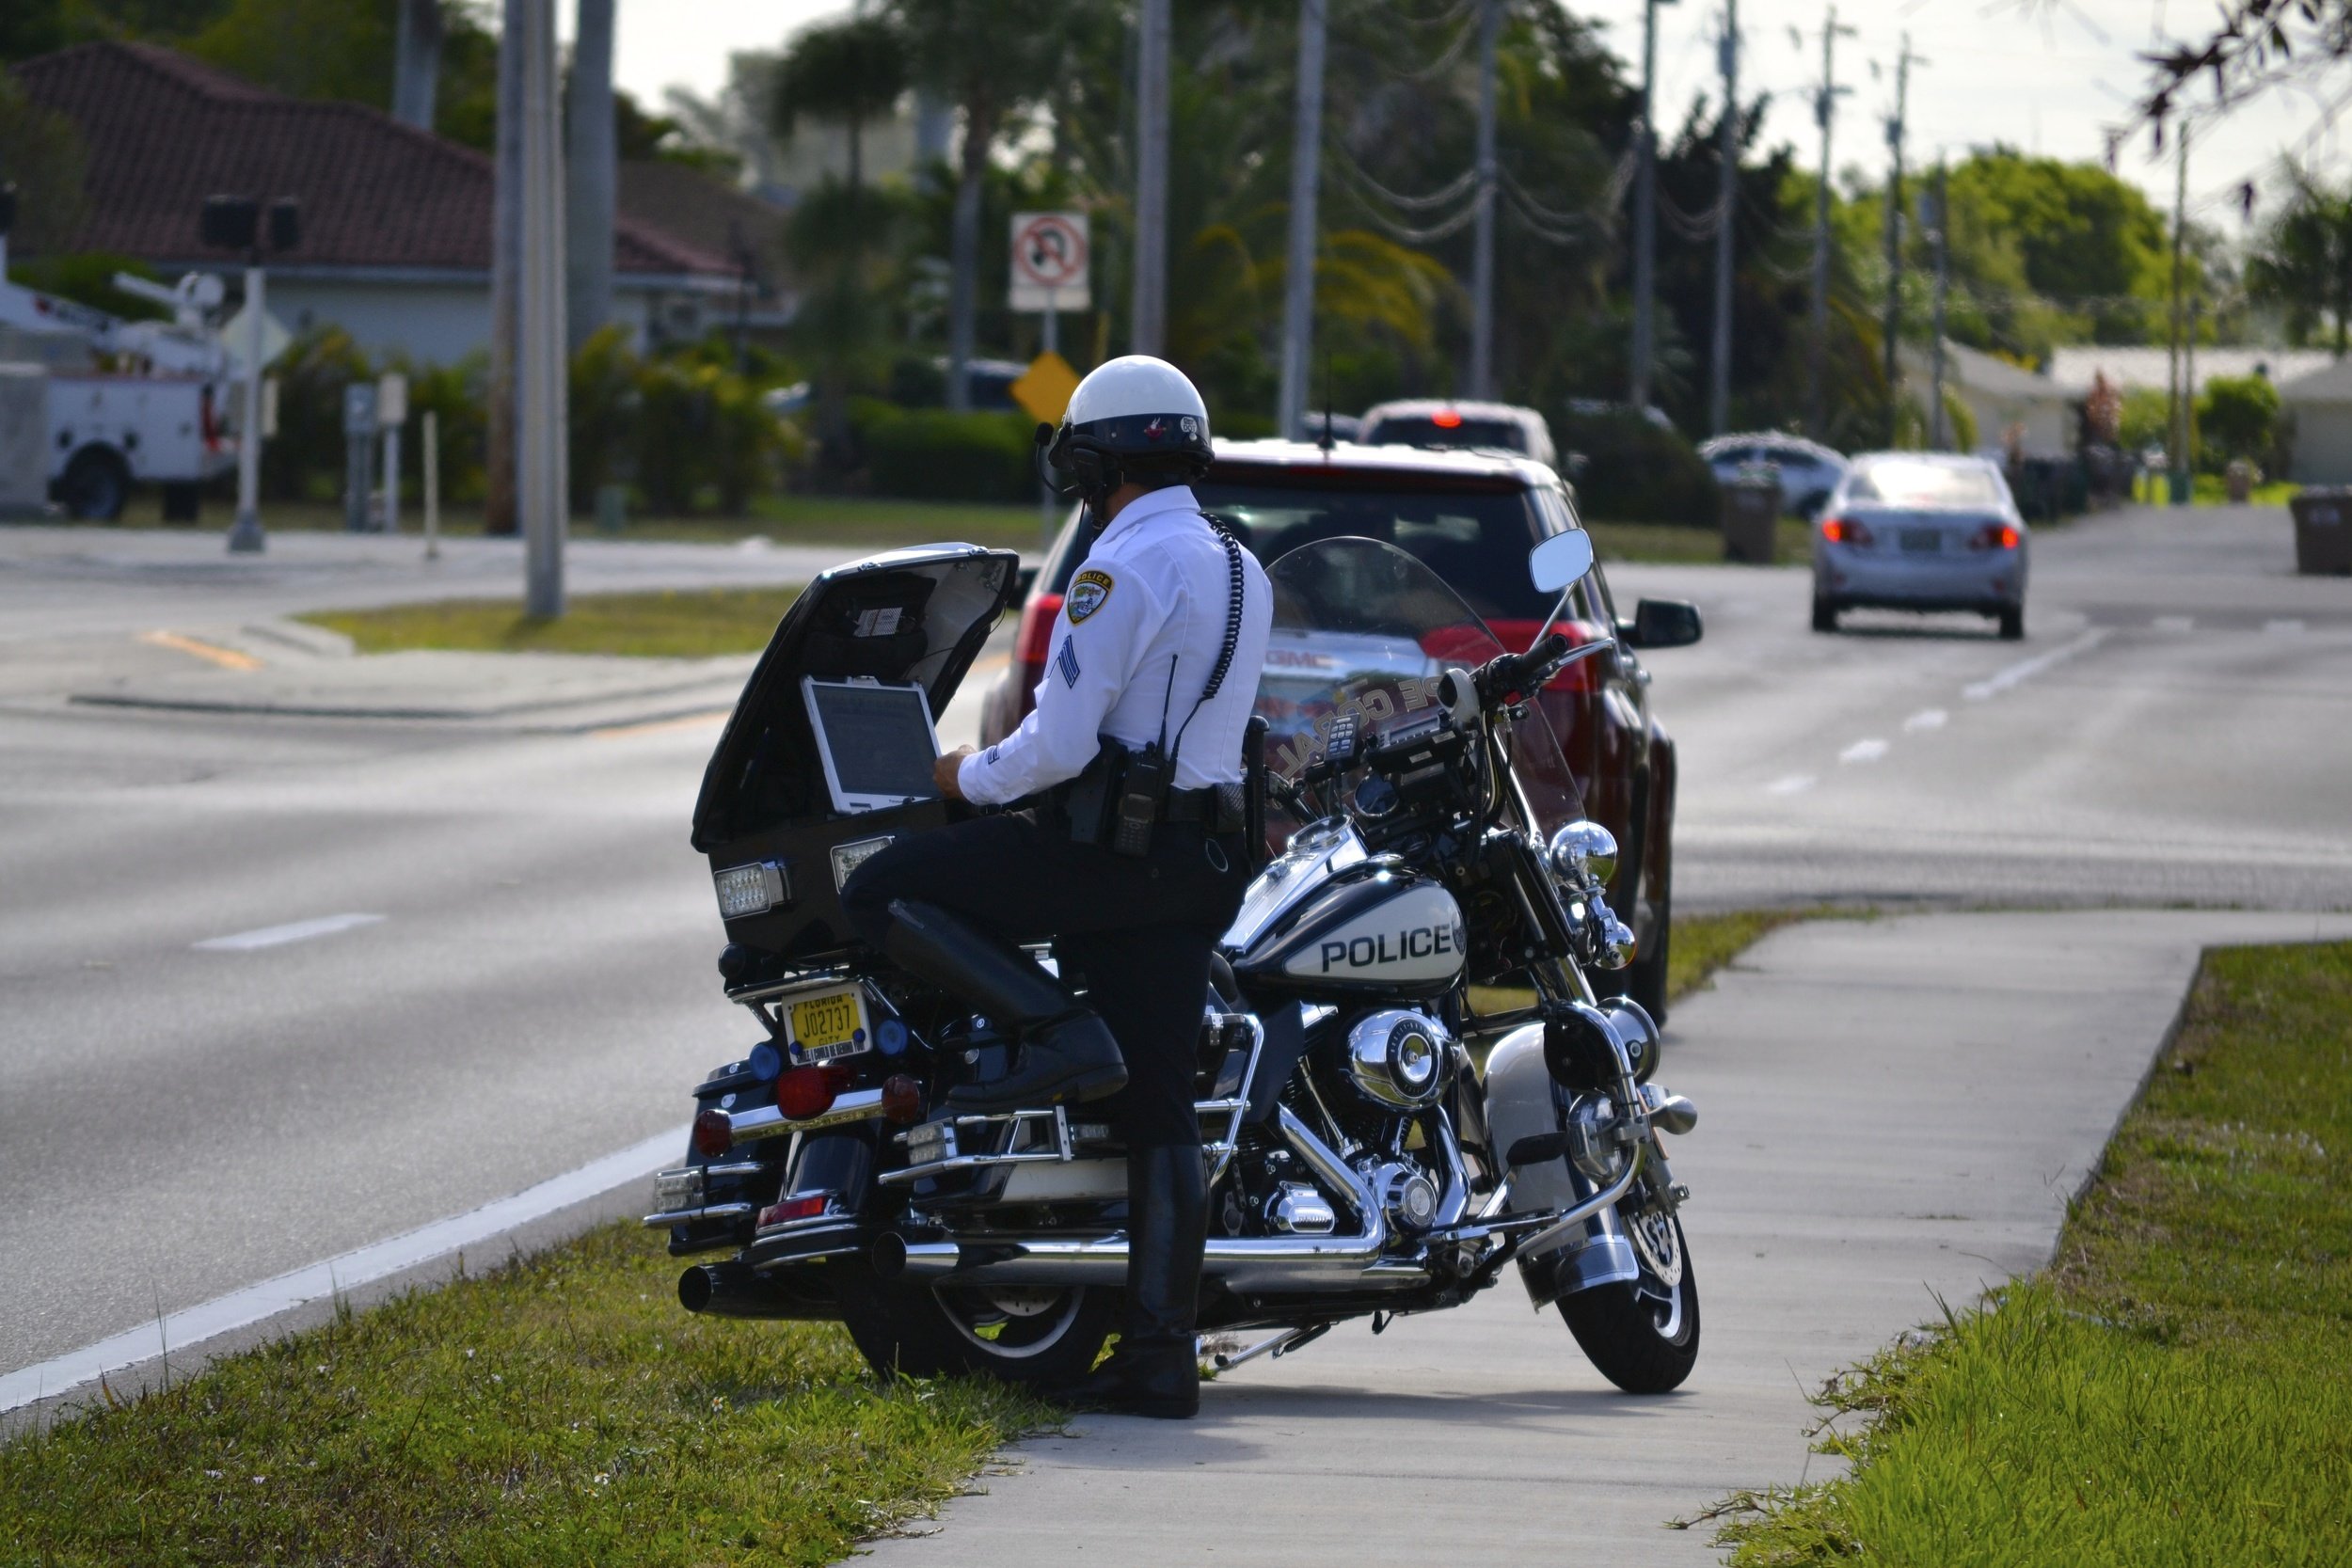 PHOTO: A Cape Coral Police Department Motorcycle officer conducts a traffic stop. (Photo Courtesy of Cape Coral Police Department)